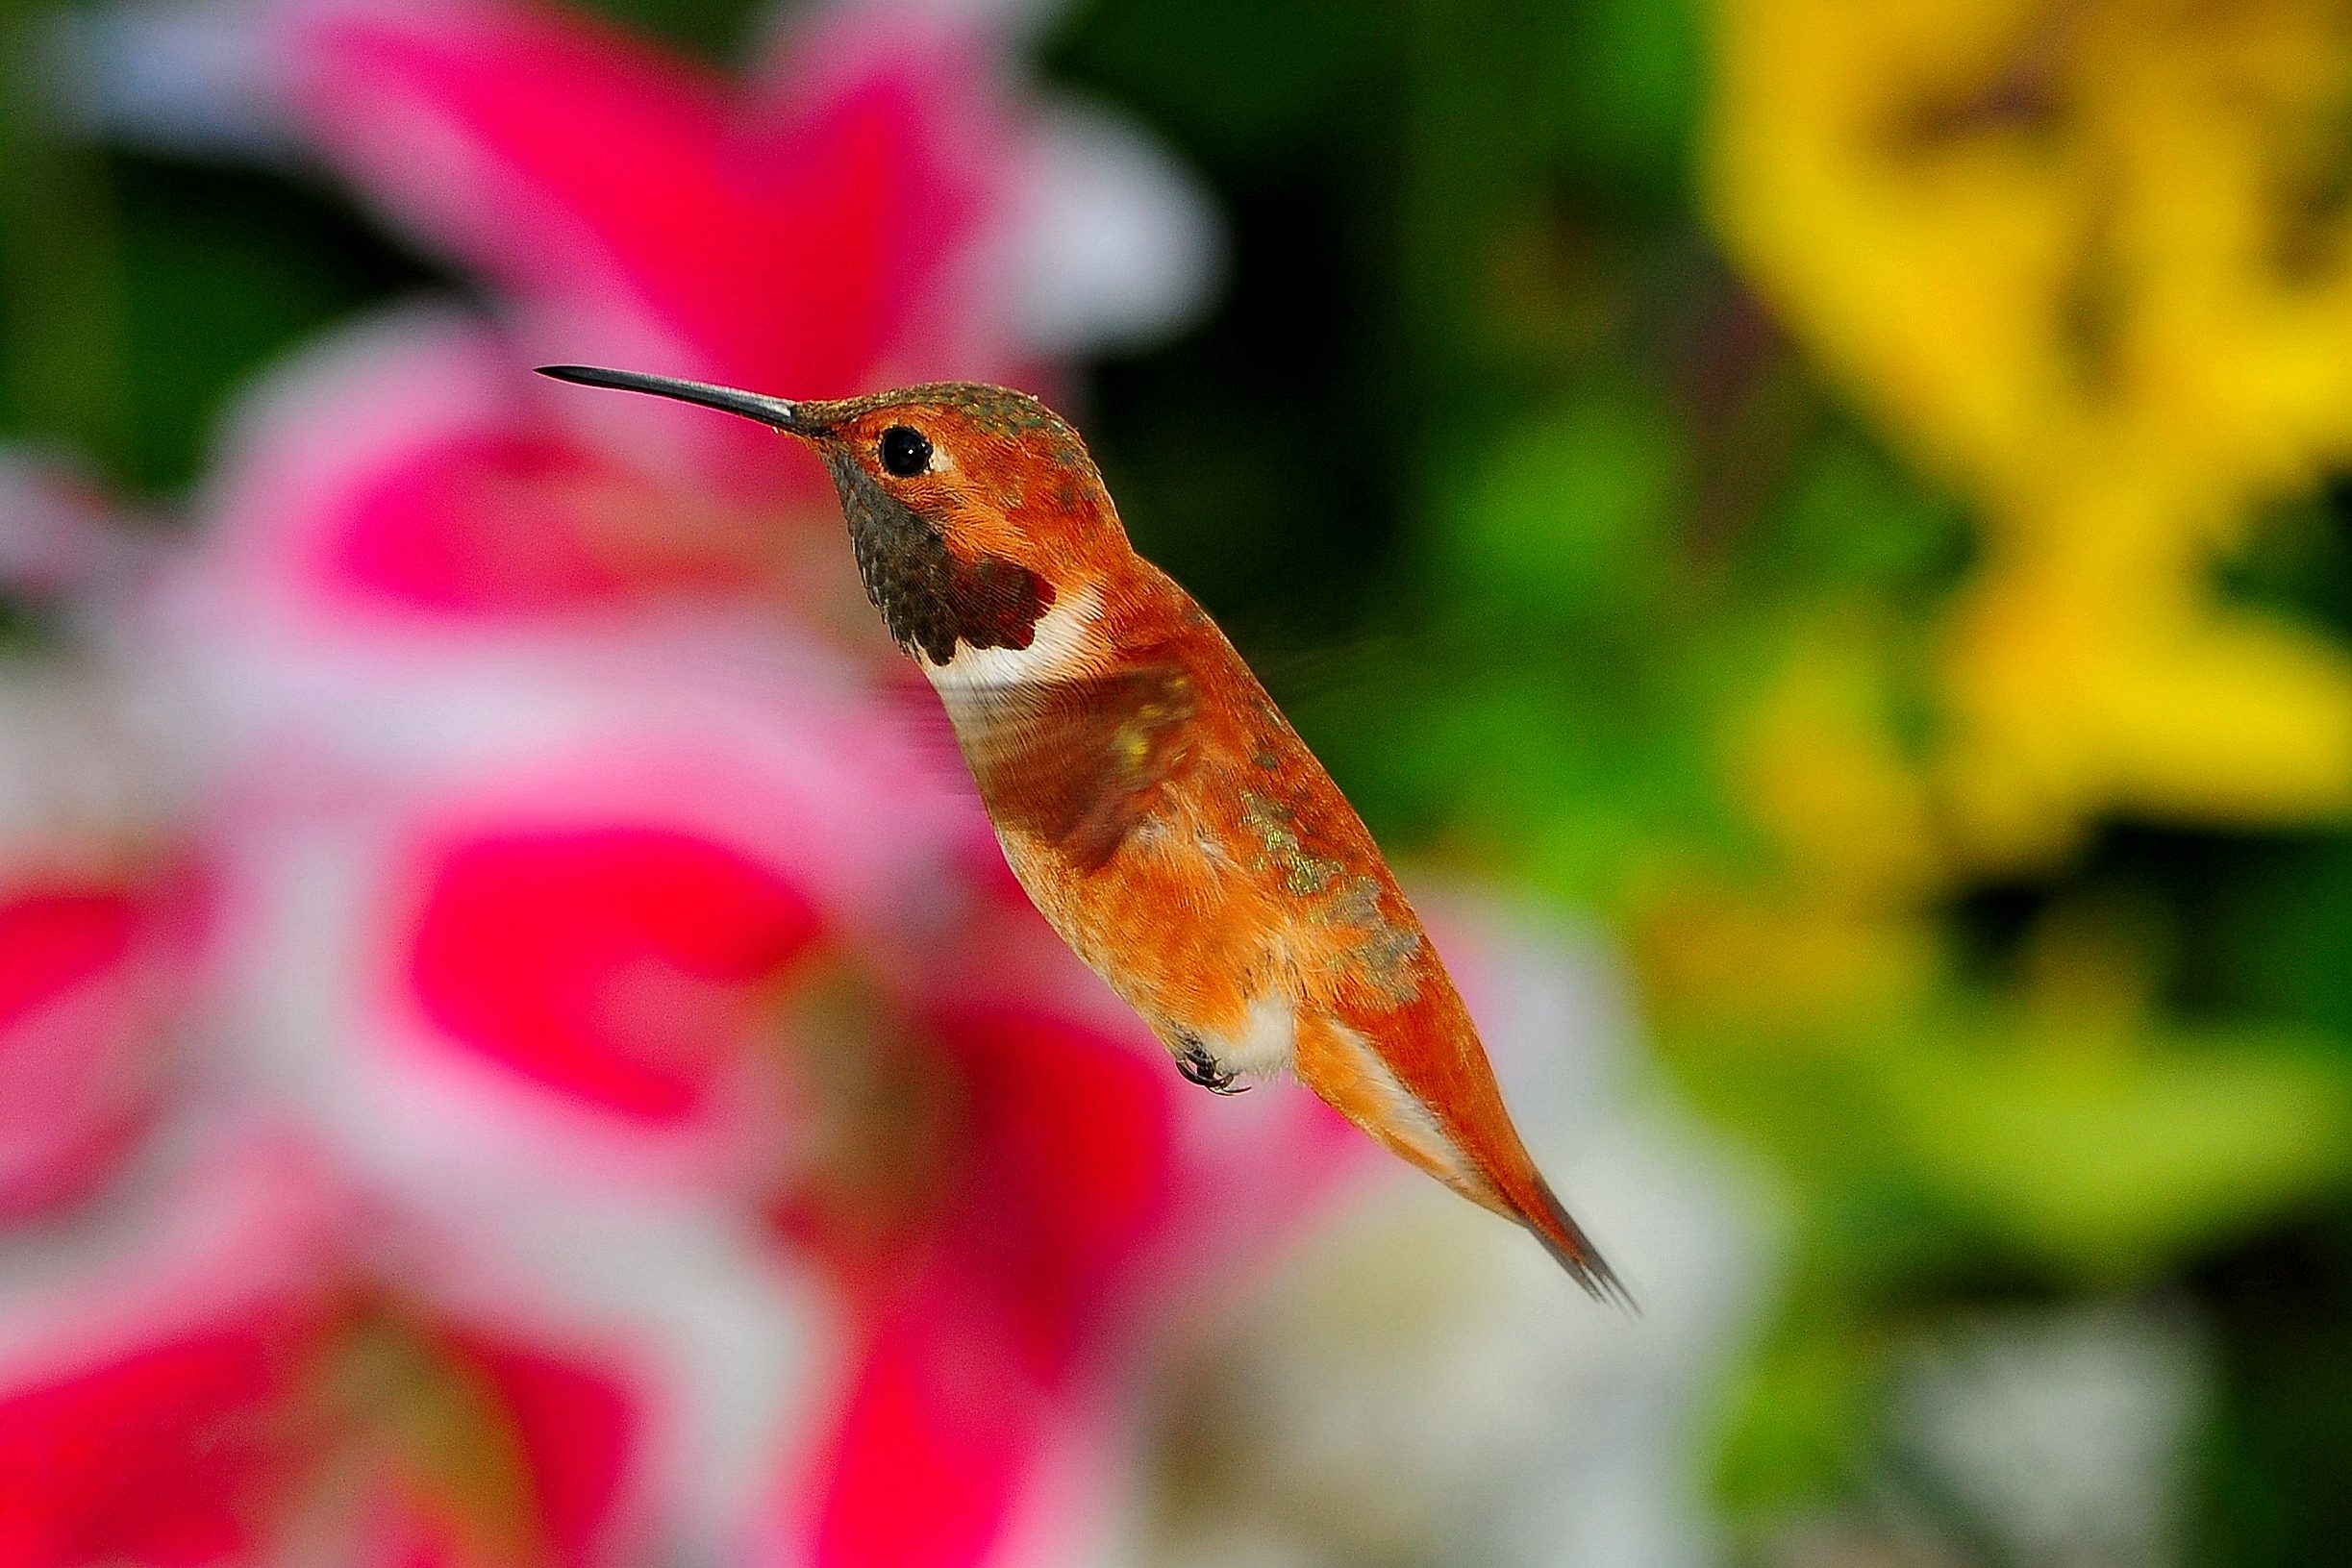 Orange Colors Of The Rufous Birds And Blooms